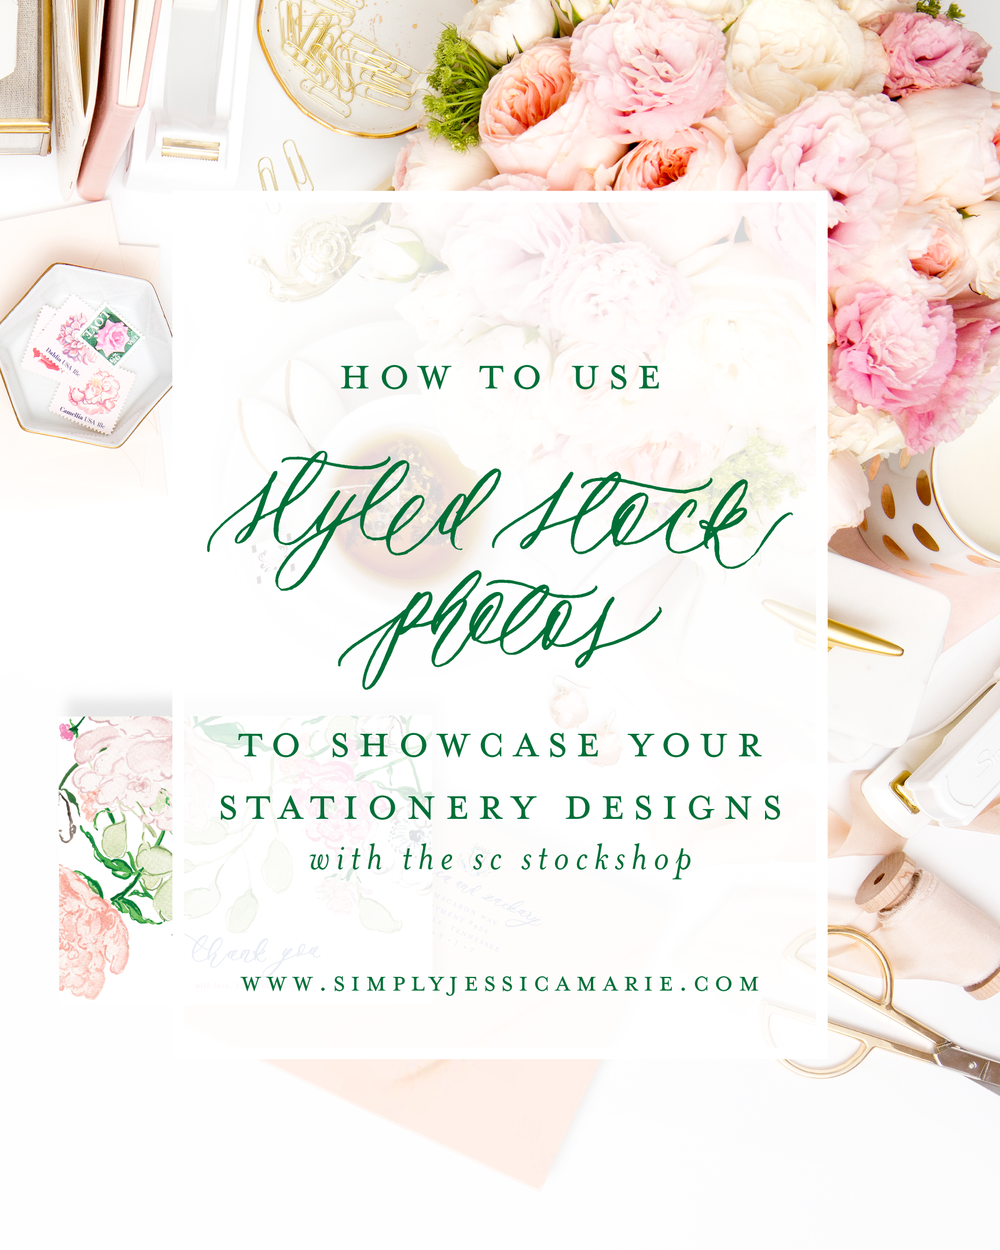 How to use styled stock photos to showcase your stationery designs with the SC Stockshop | Free video tutorial by Simply Jessica Marie